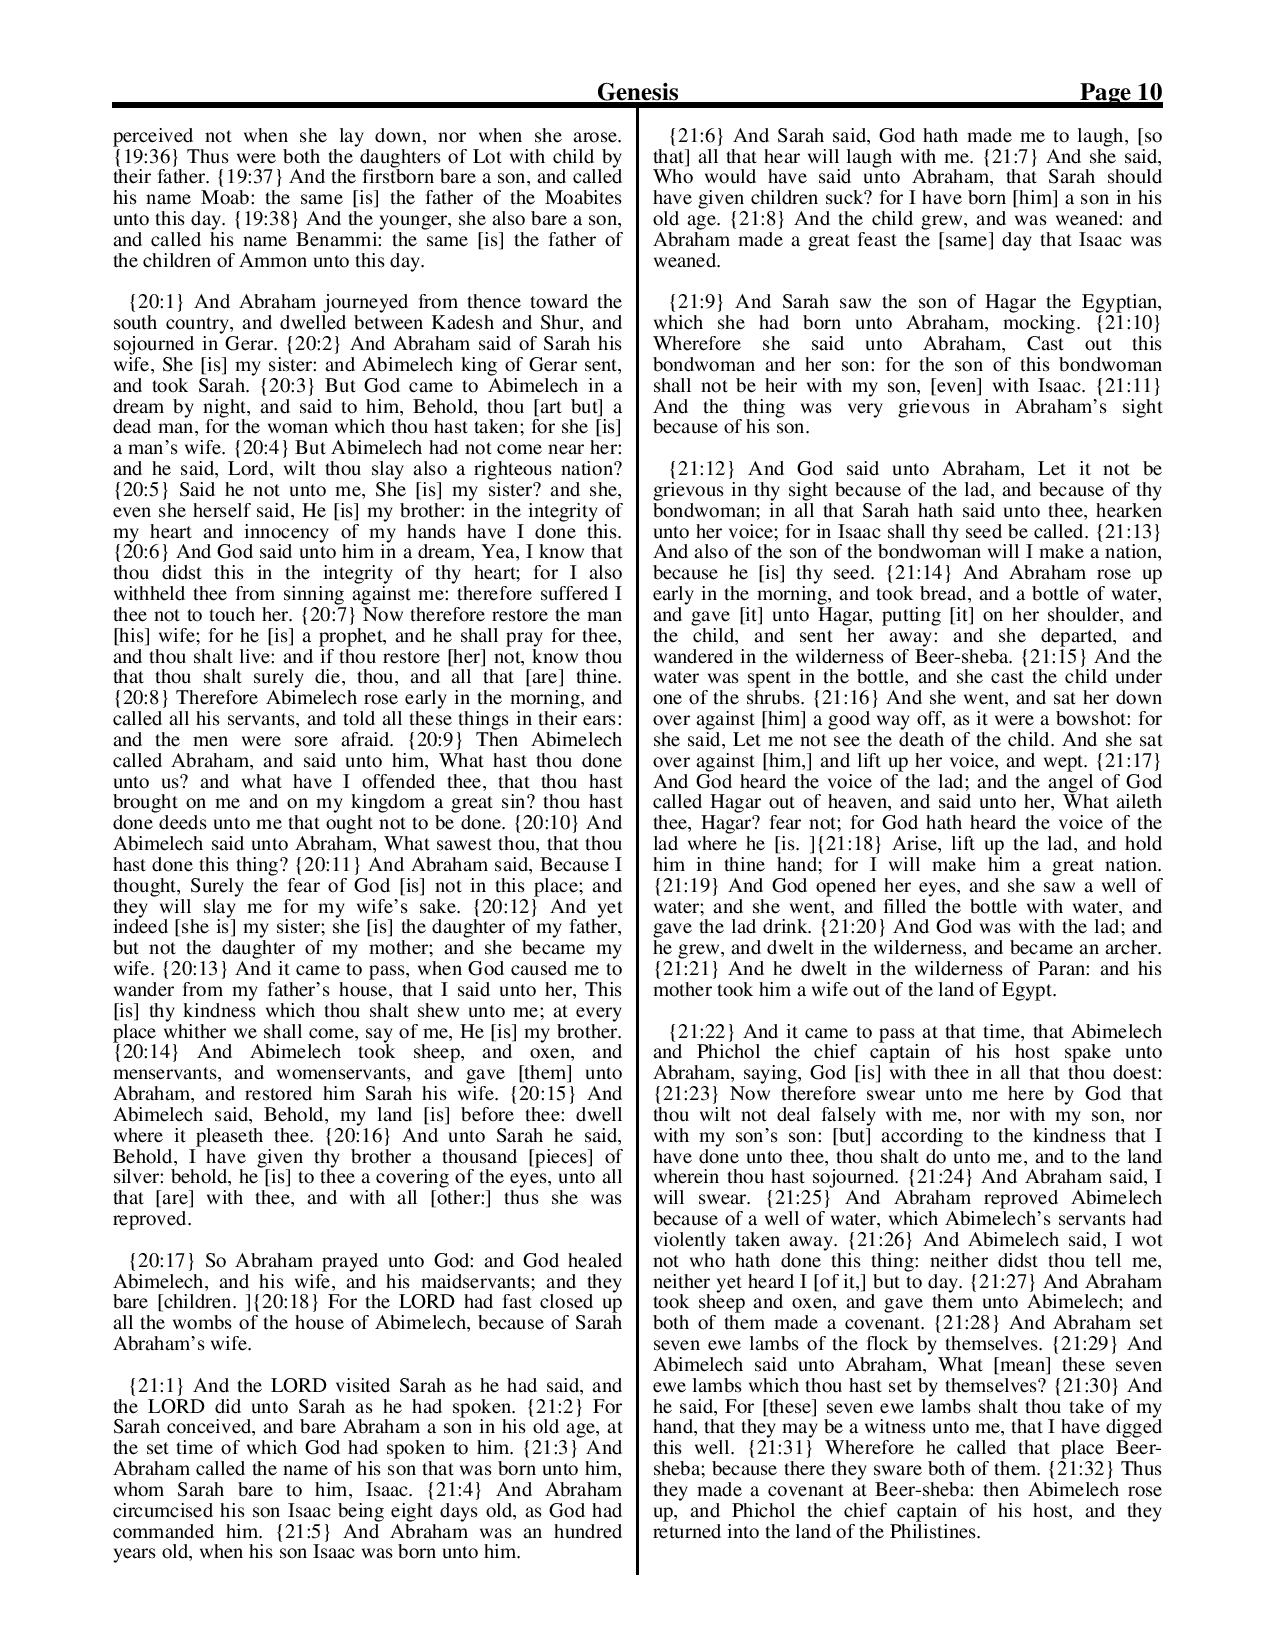 King-James-Bible-KJV-Bible-PDF-page-031